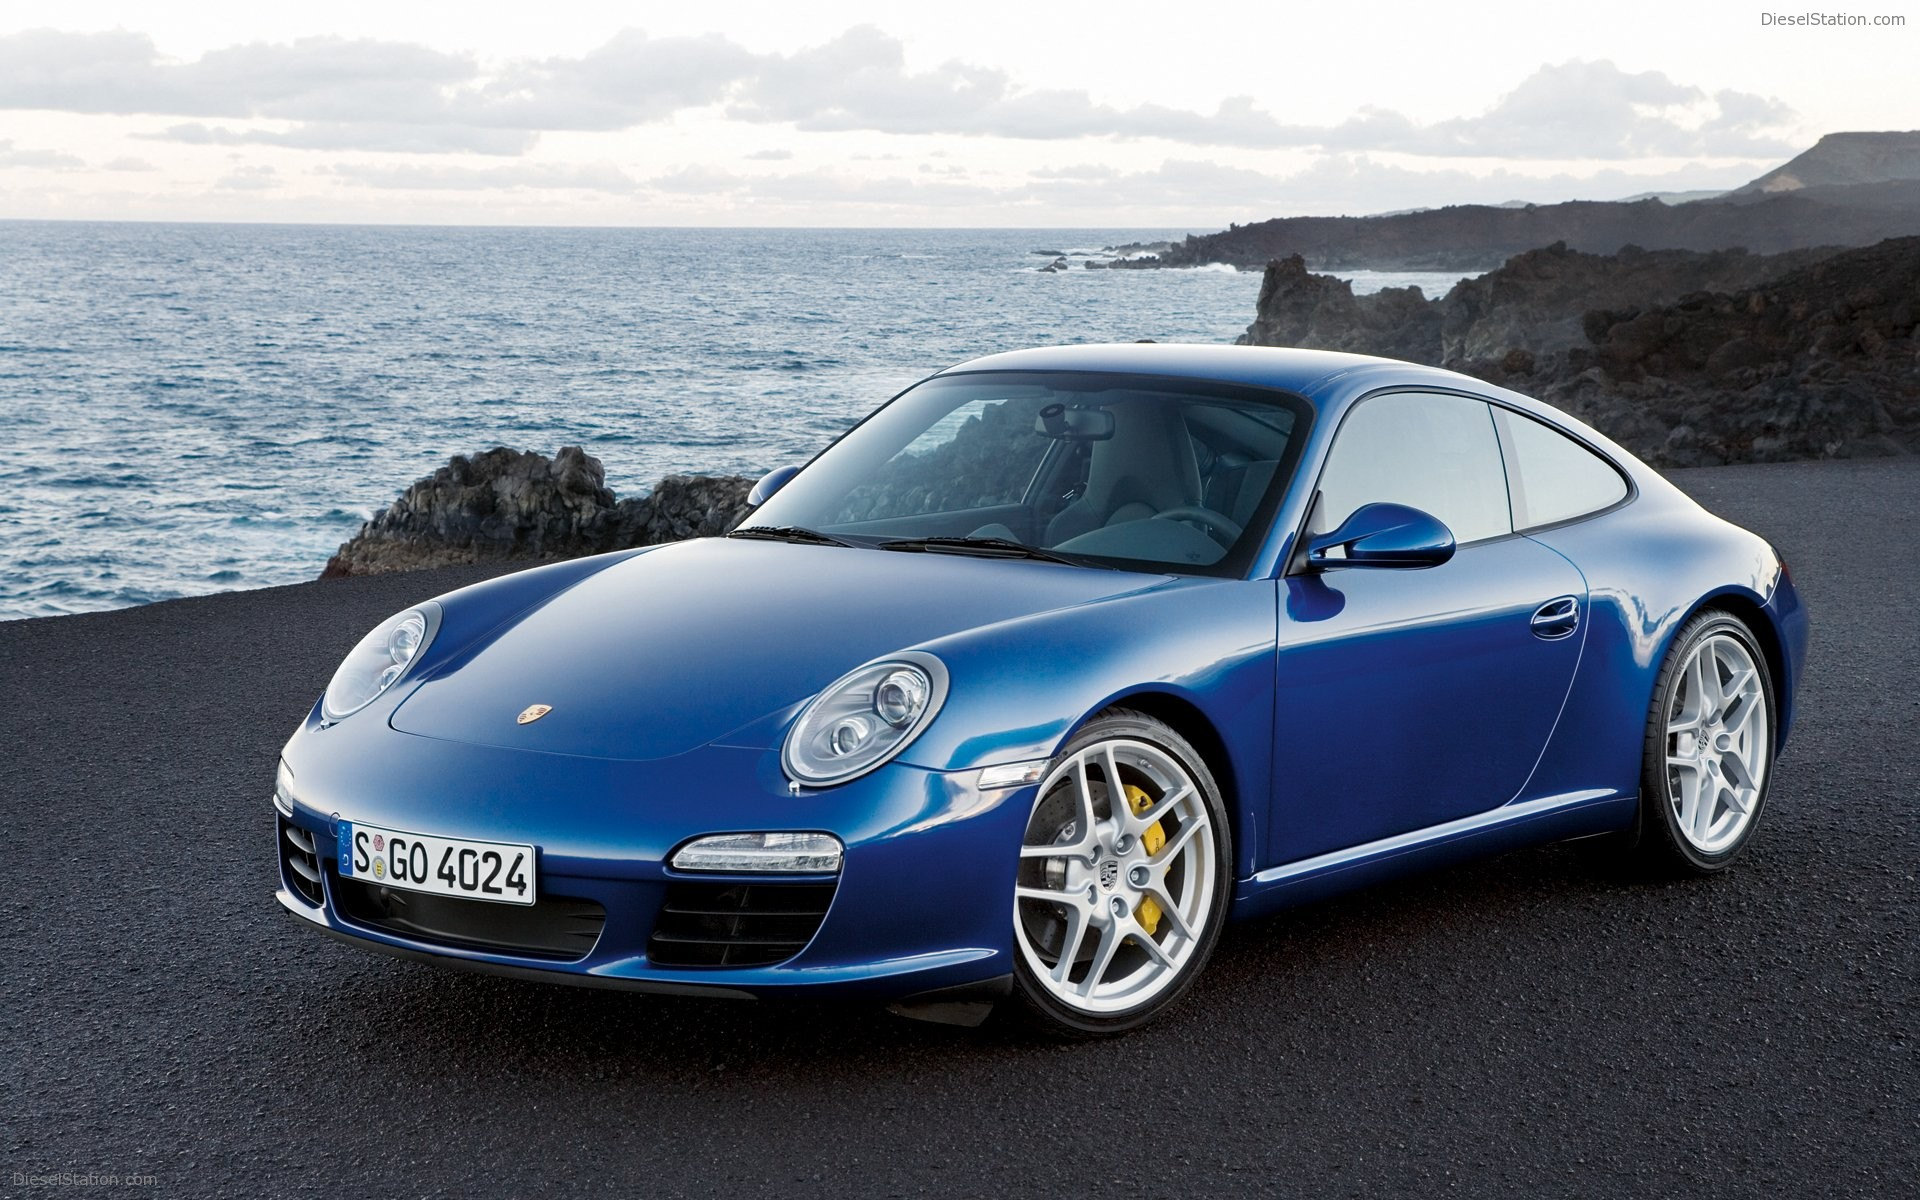 Porsche 911 Carrera and Carrera S. Published On : Sep 30, 2008